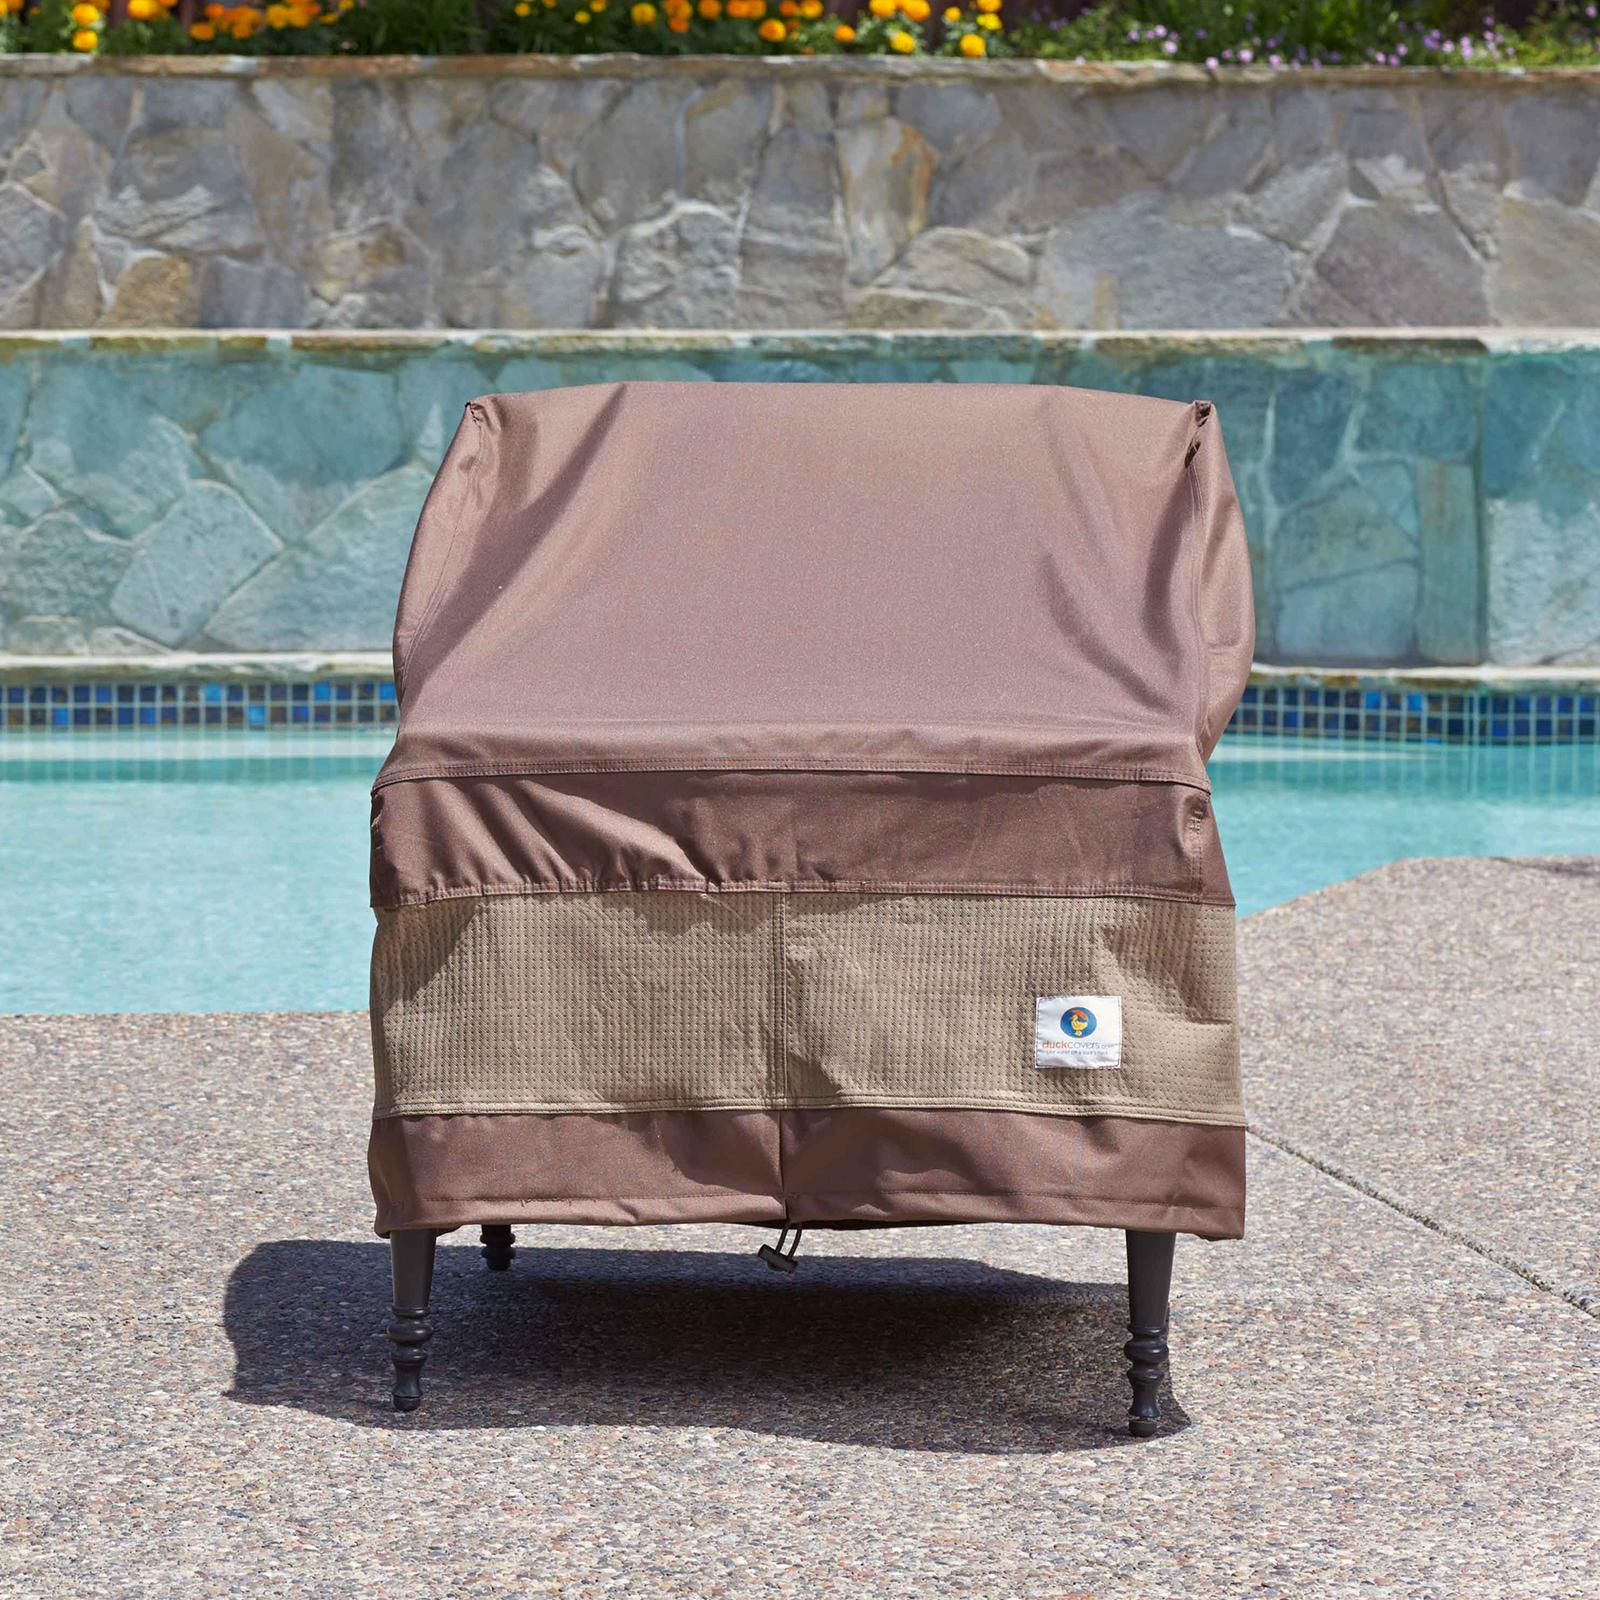 Amazon Duck Covers Ultimate Patio Chair Cover 29 Inch Patio Lawn &a